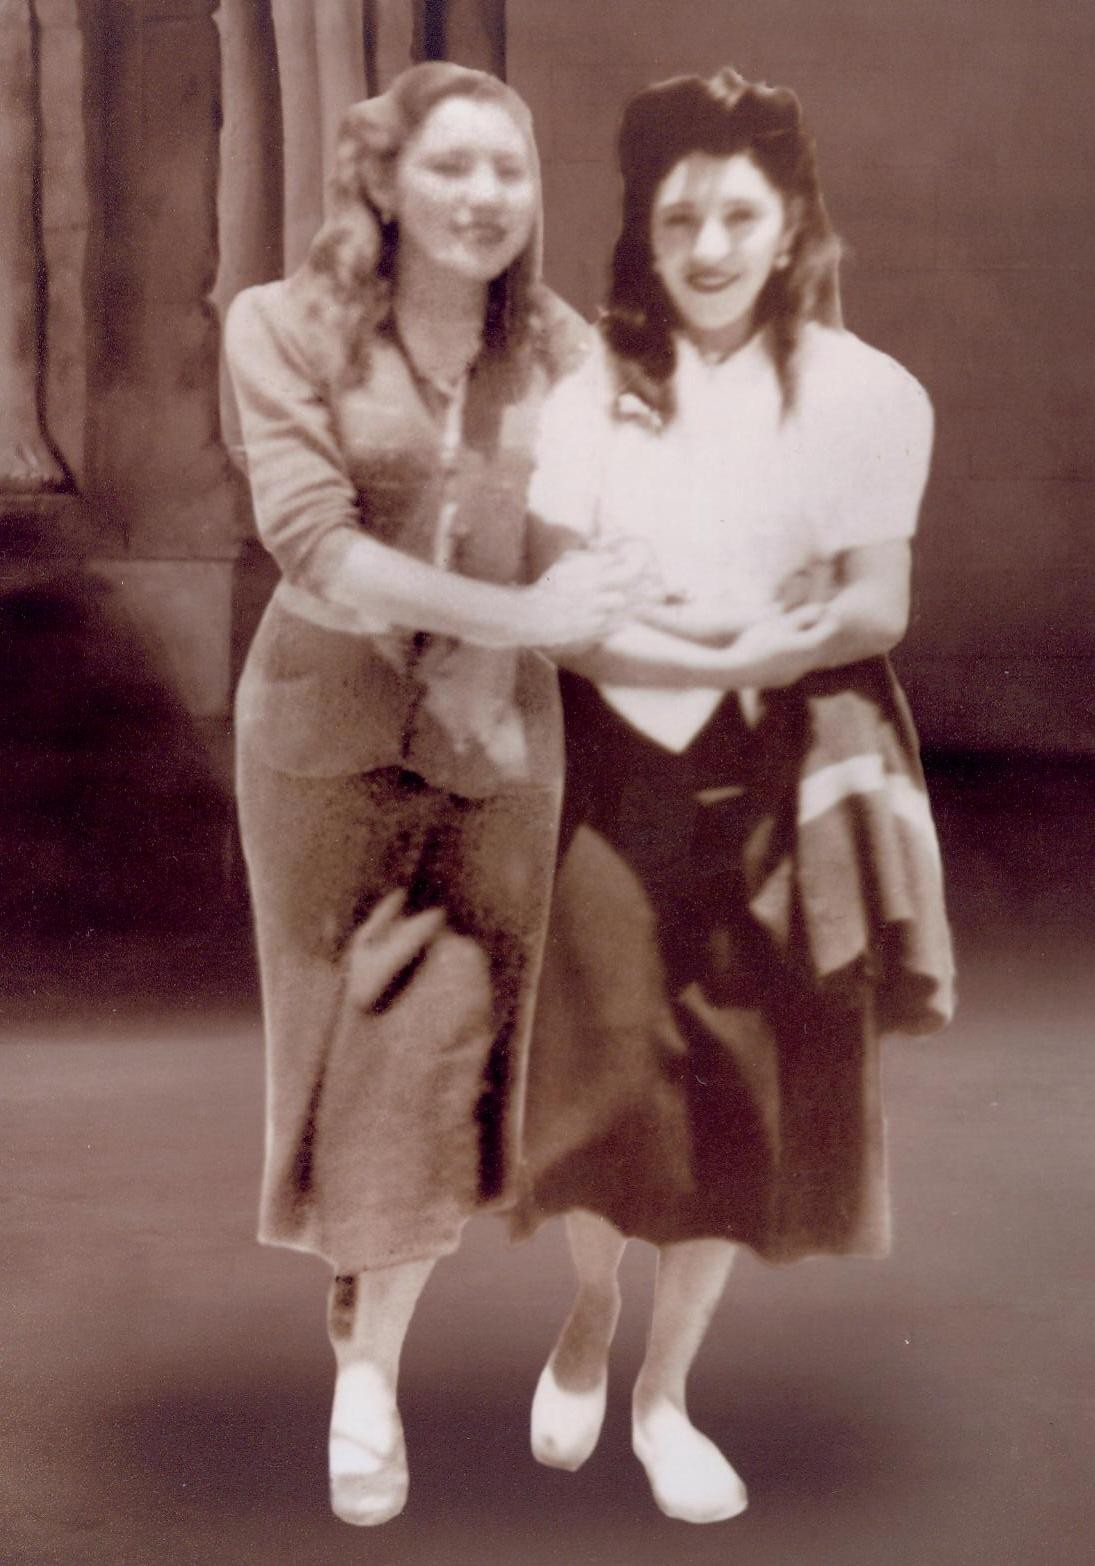 Two young women in the 1940s, Bolivia